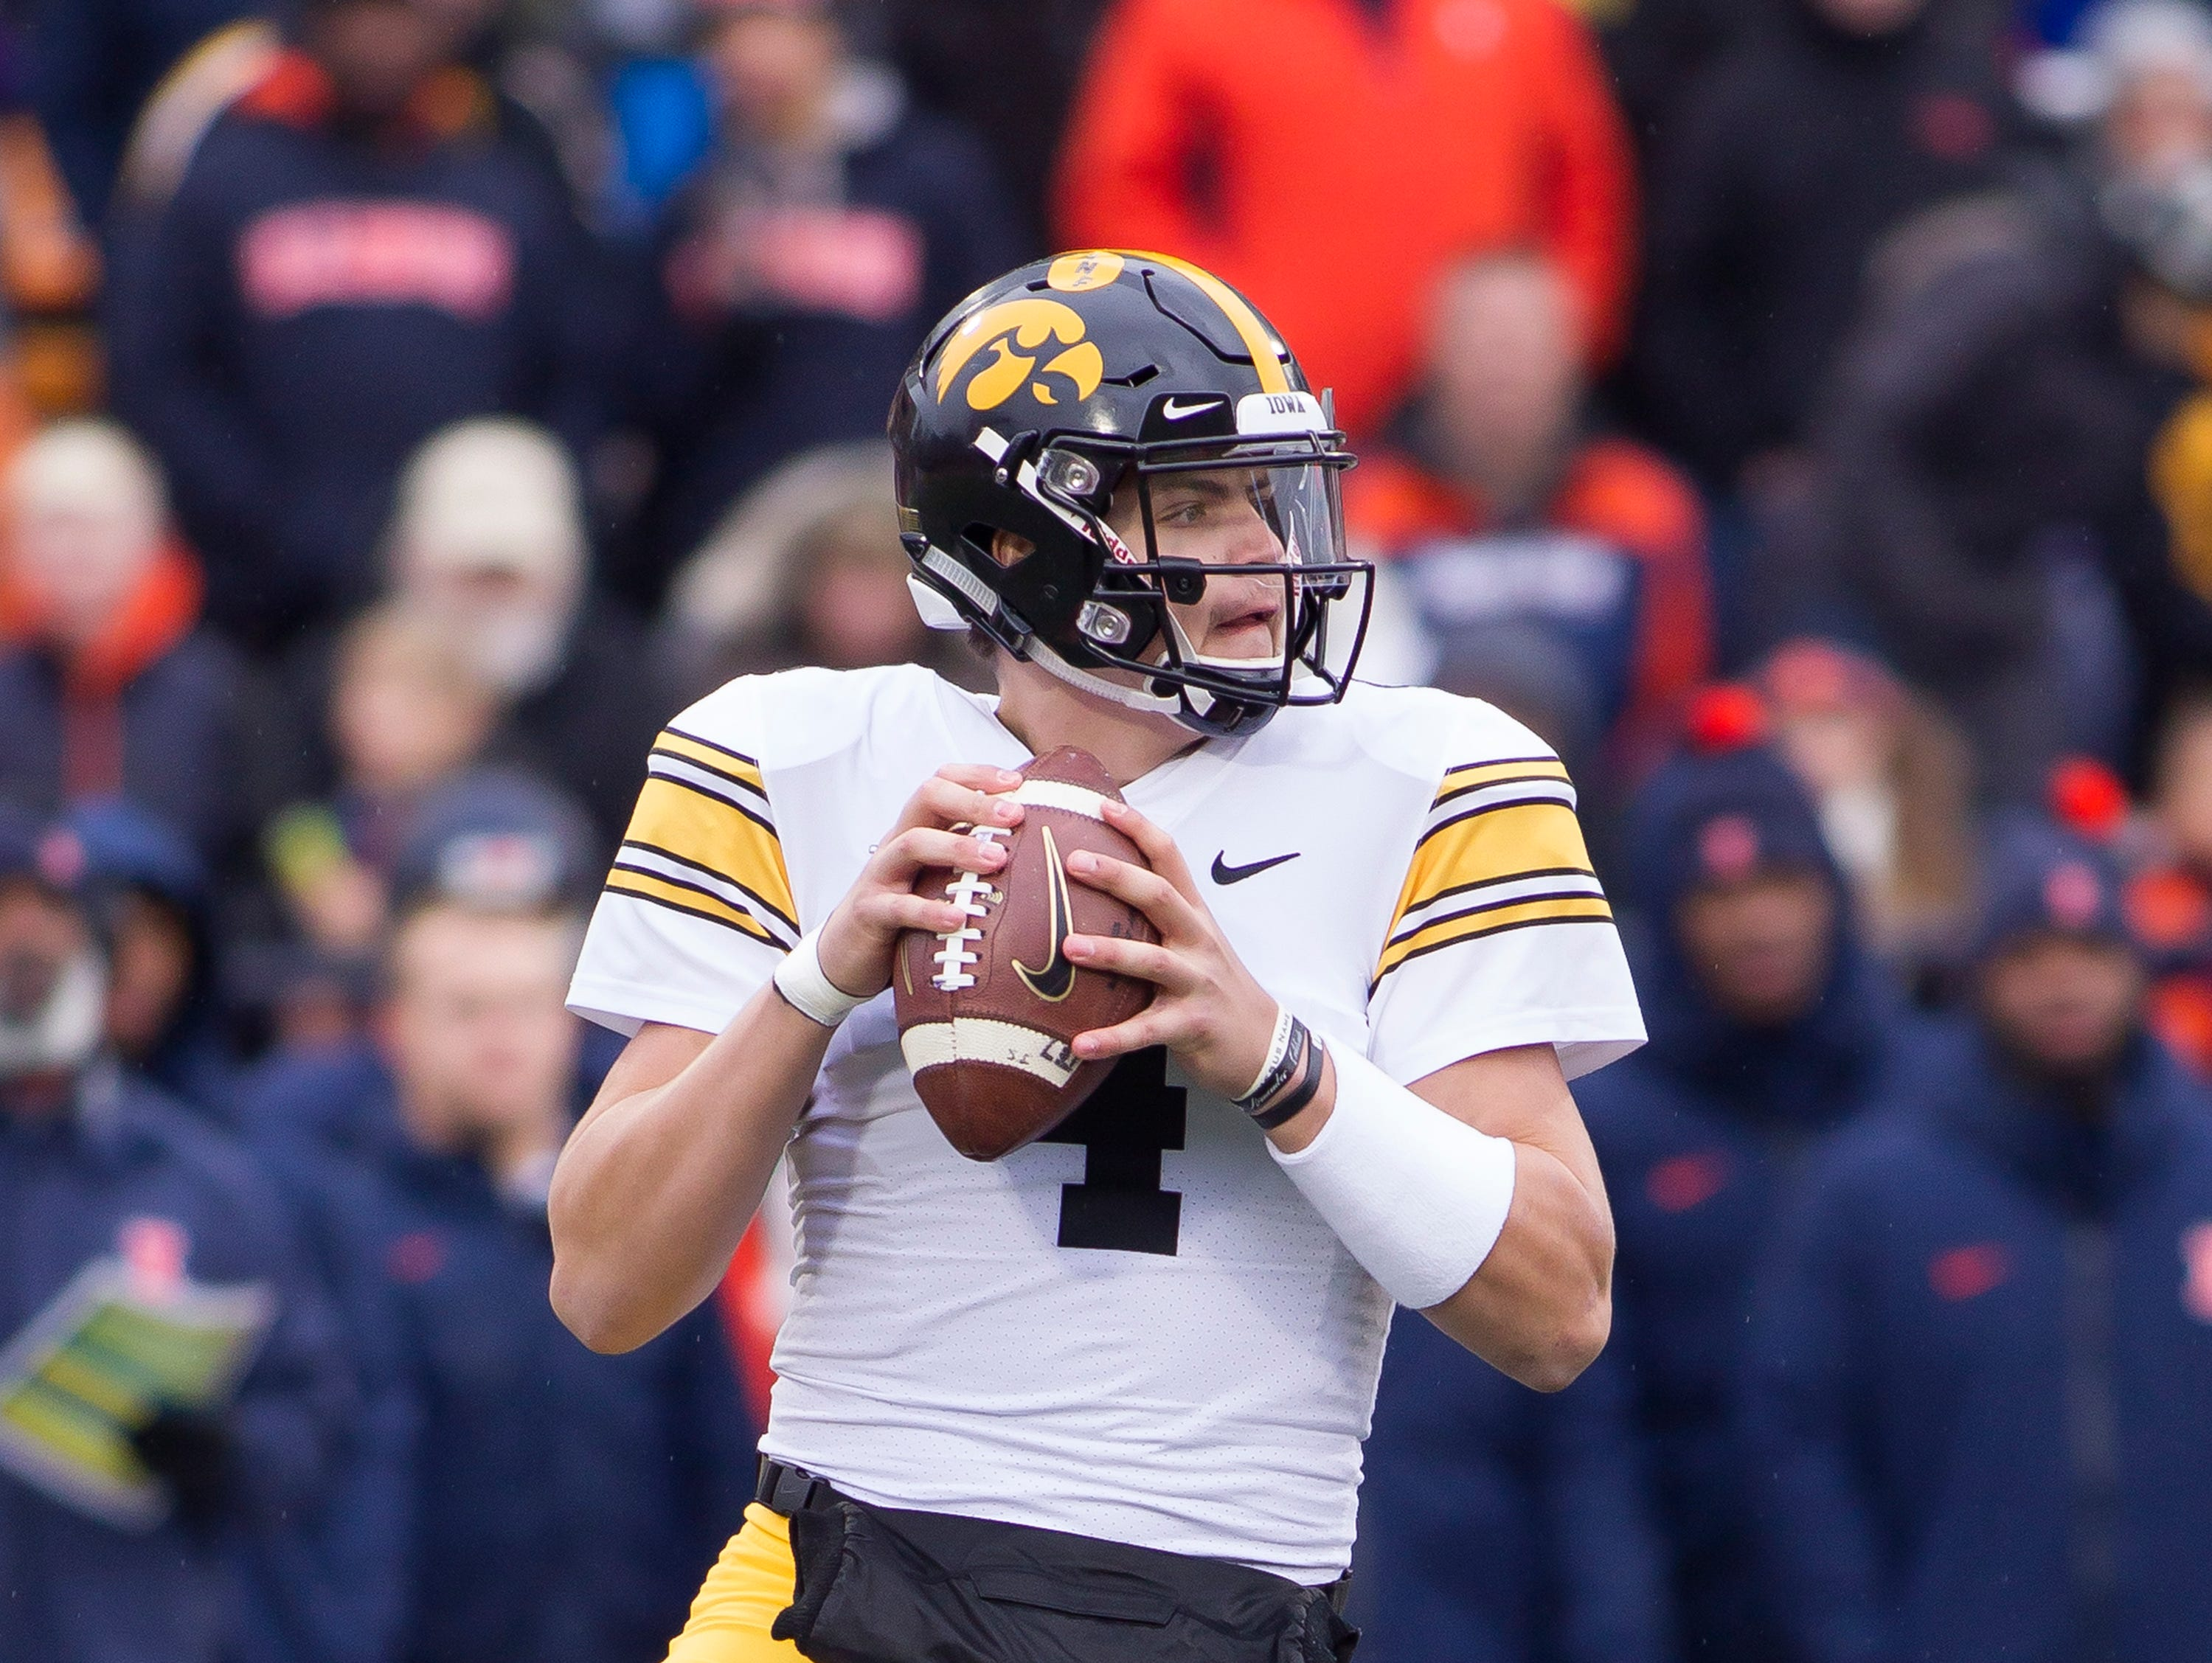 Nov 17, 2018; Champaign, IL, USA; Iowa Hawkeyes quarterback Nate Stanley (4) sets up to pass during the first quarter against the Illinois Fighting Illini at Memorial Stadium.